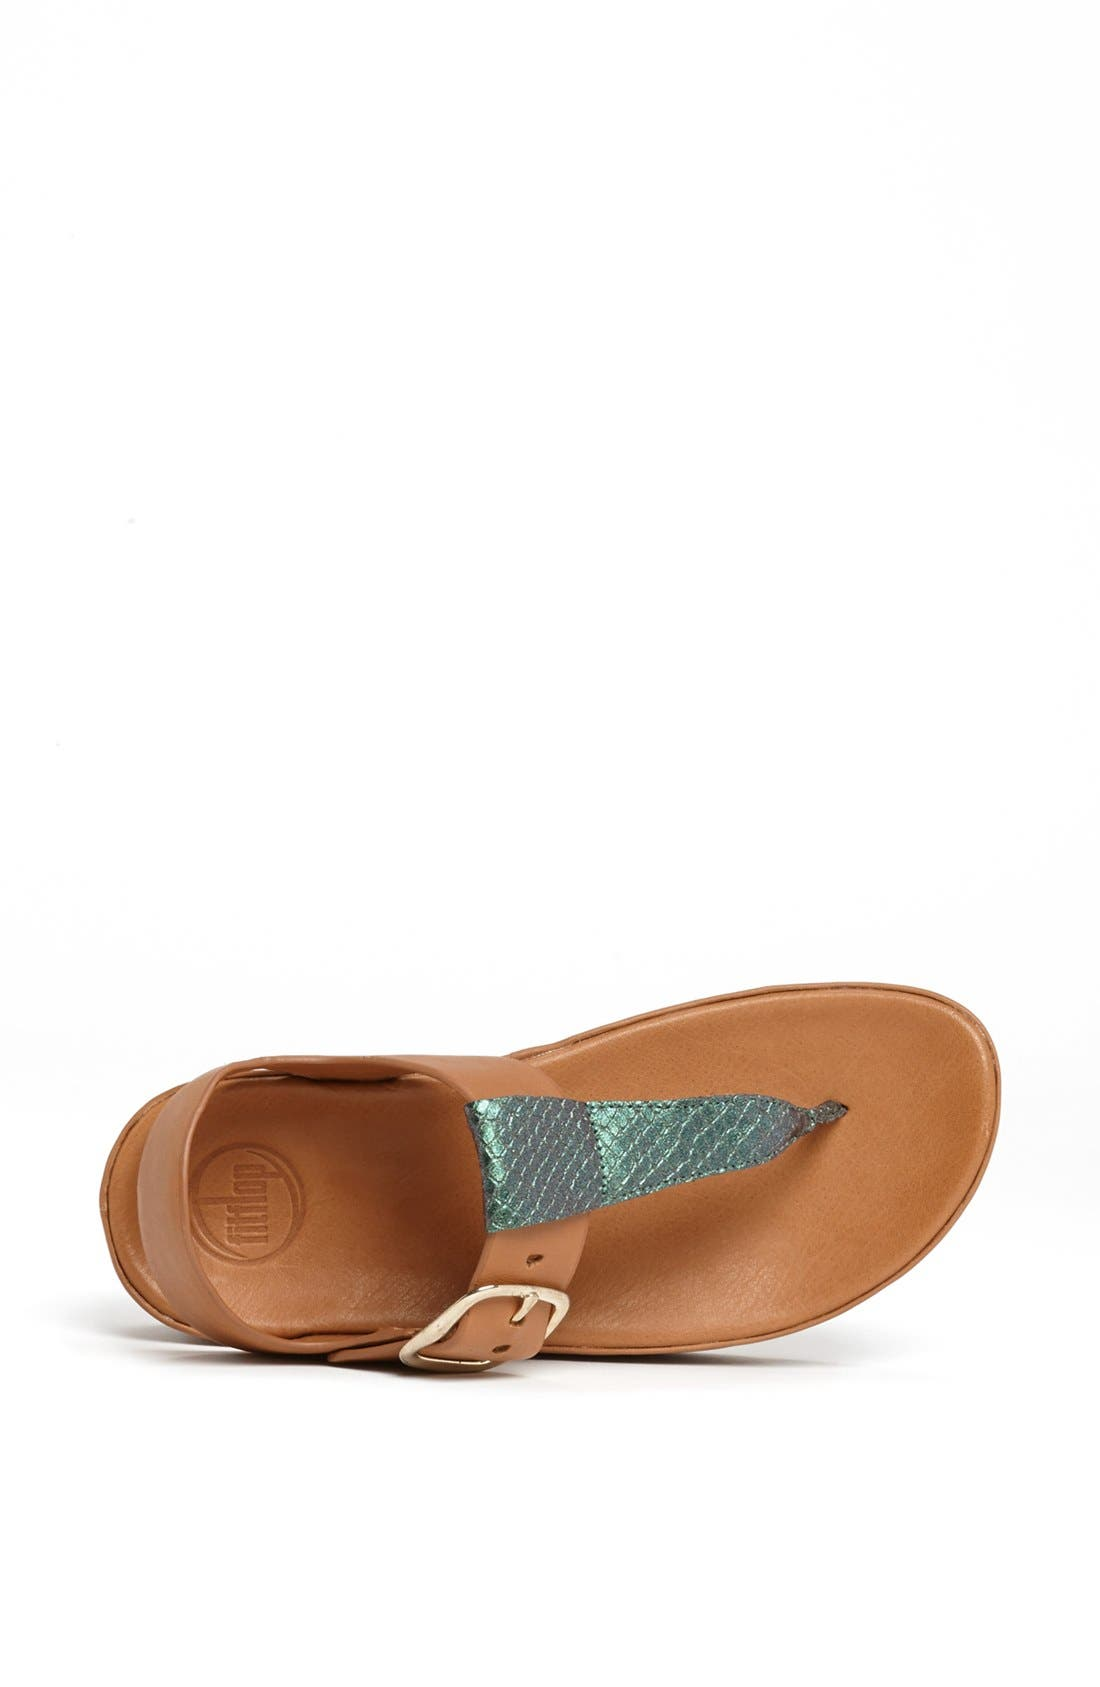 Alternate Image 3  - FitFlop 'Tia™' Leather Sandal